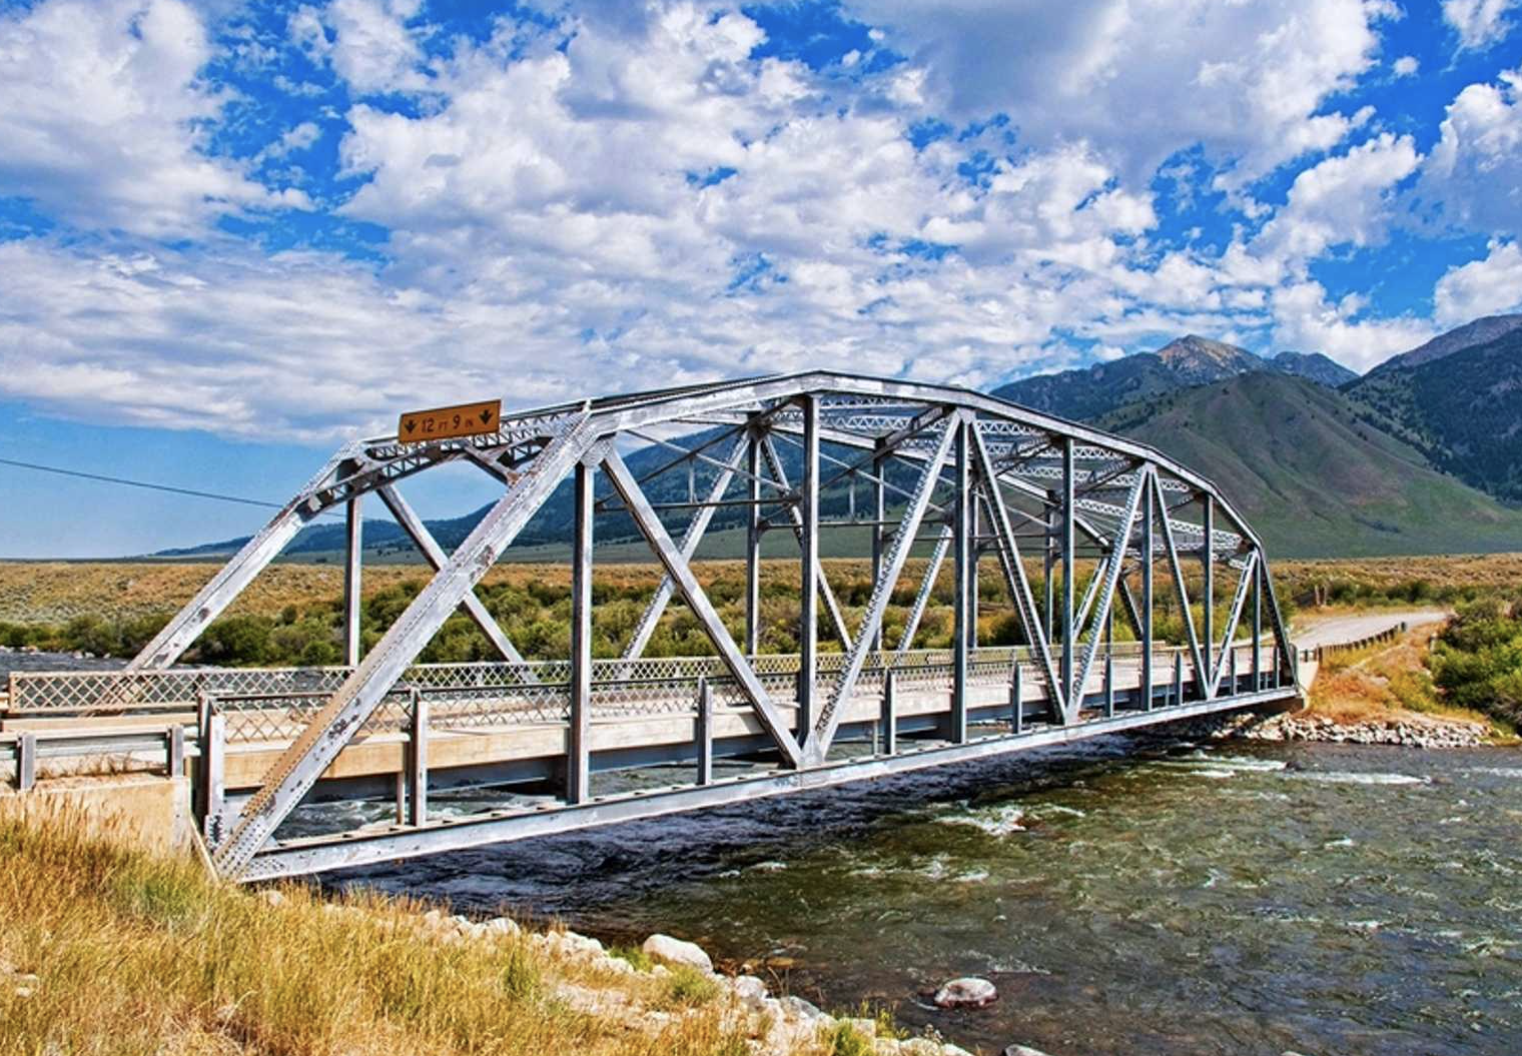 Bridge over river at campground in Montana with mountains in background